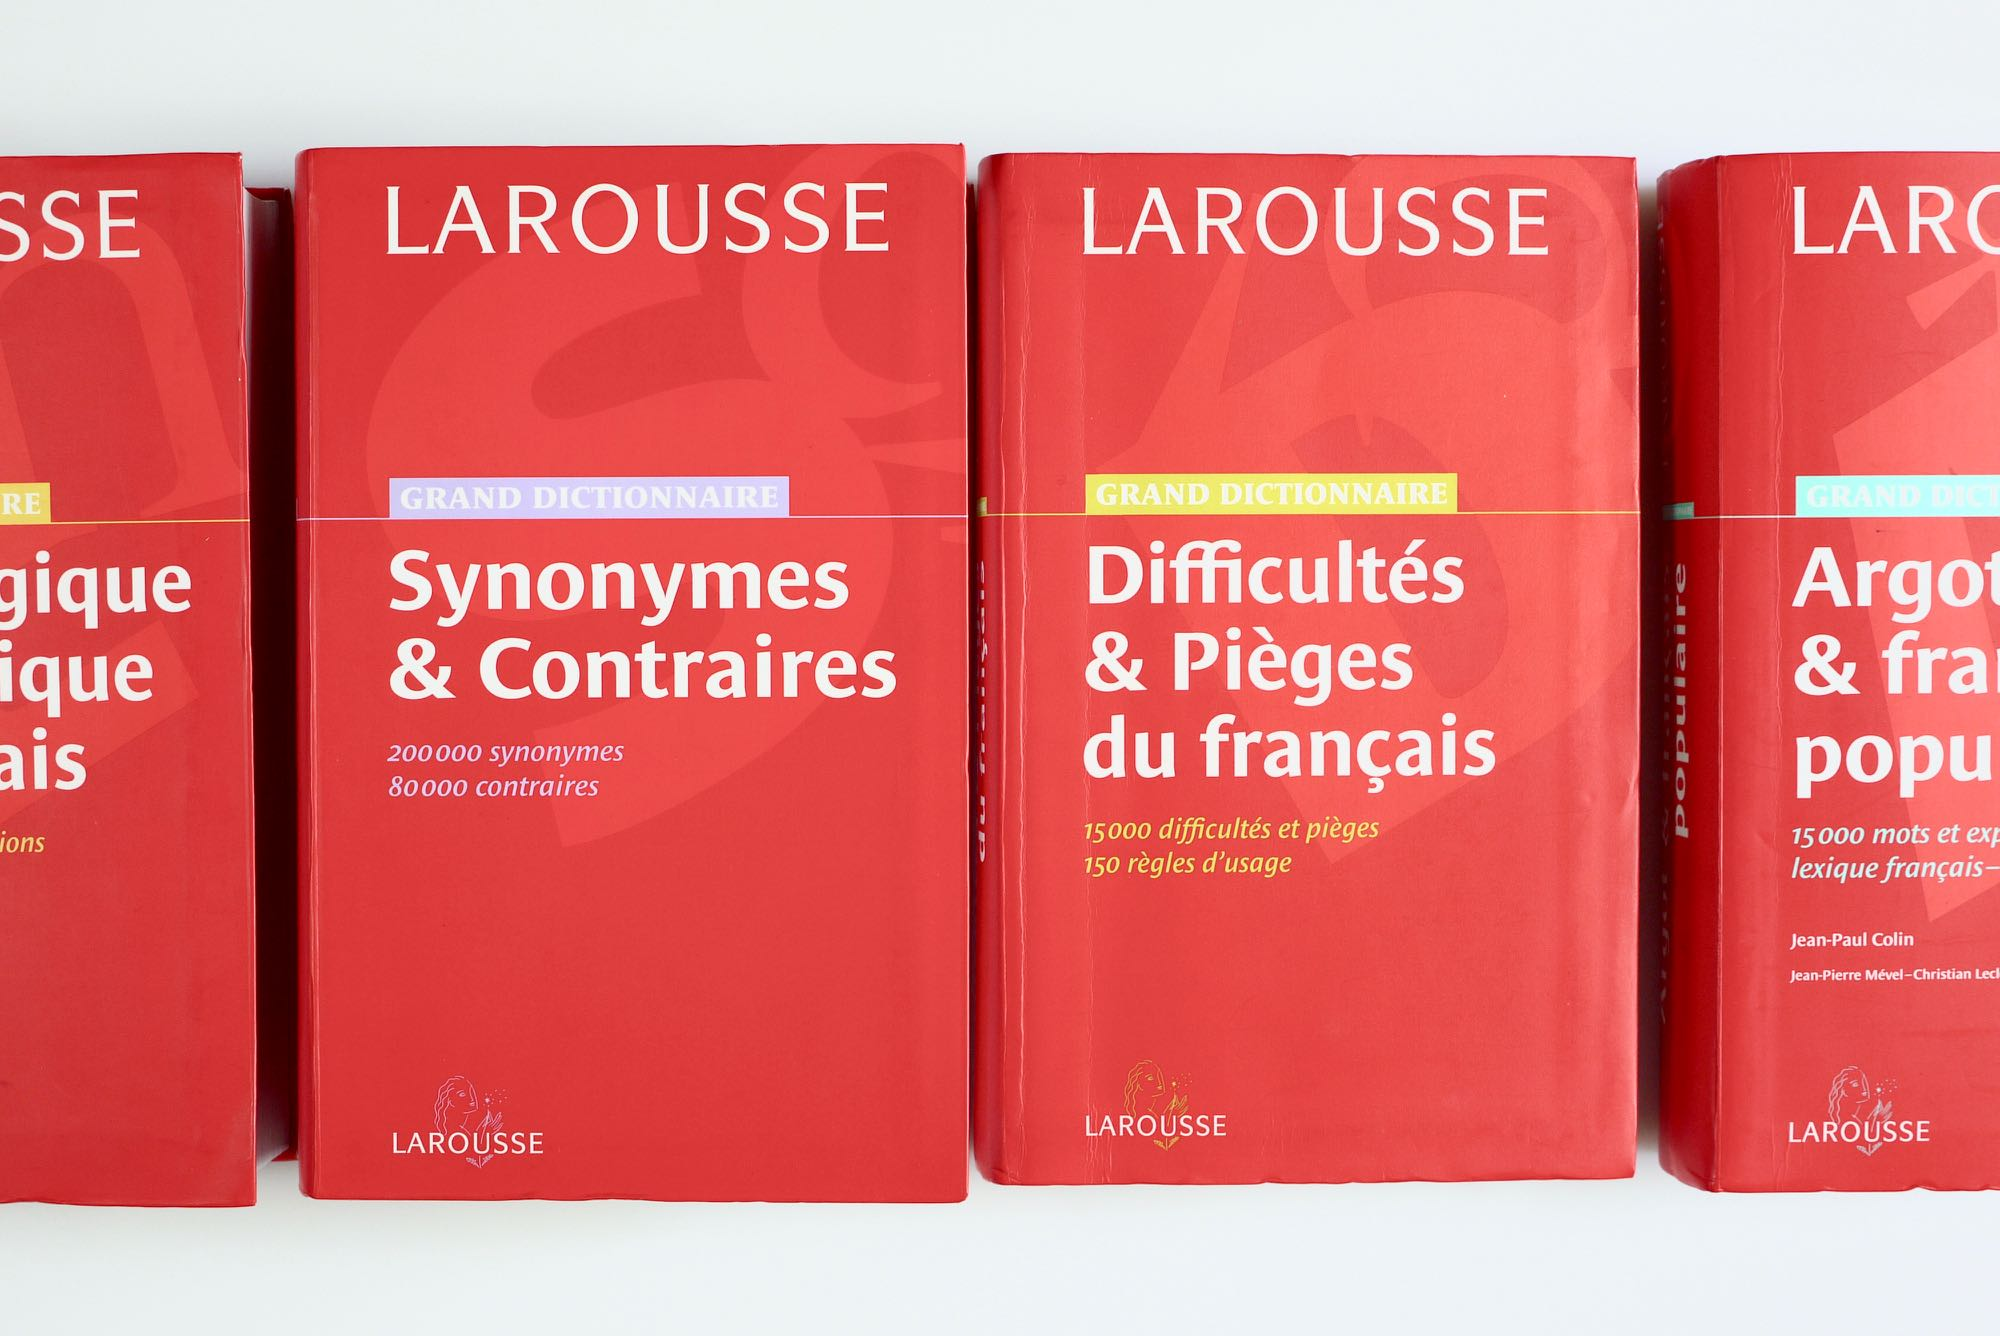 Larousse dictionaries